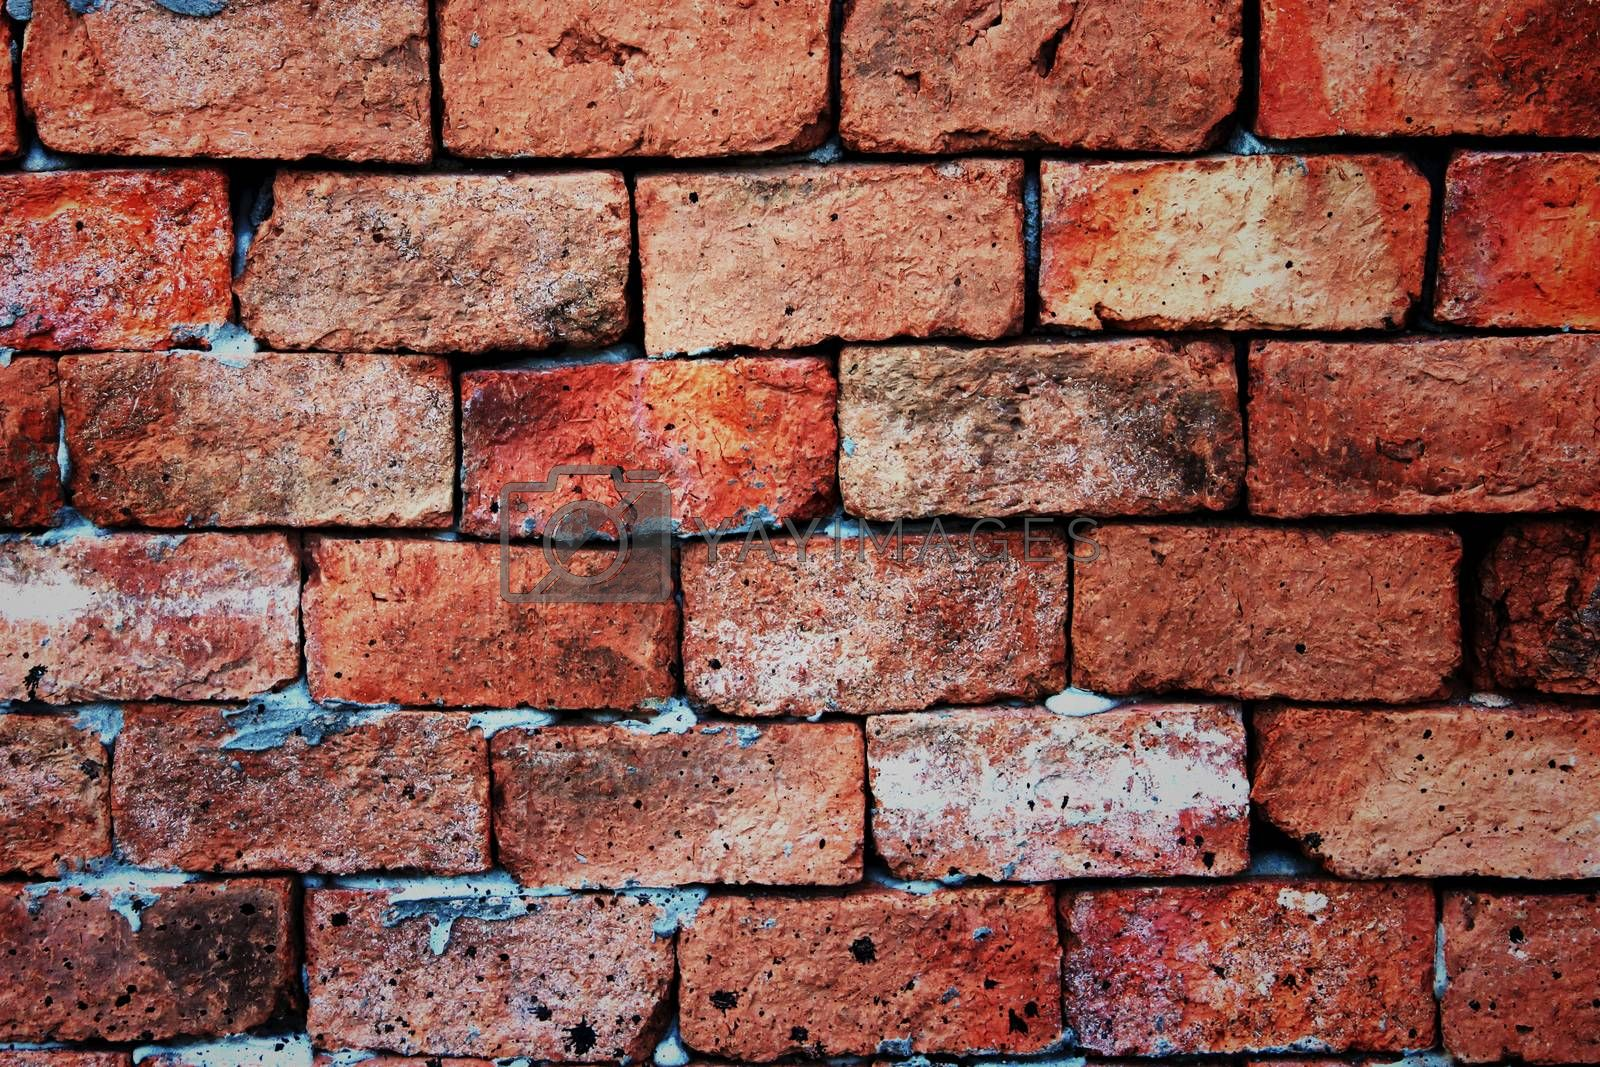 The Brick Background vivid color arising from various types of stone.